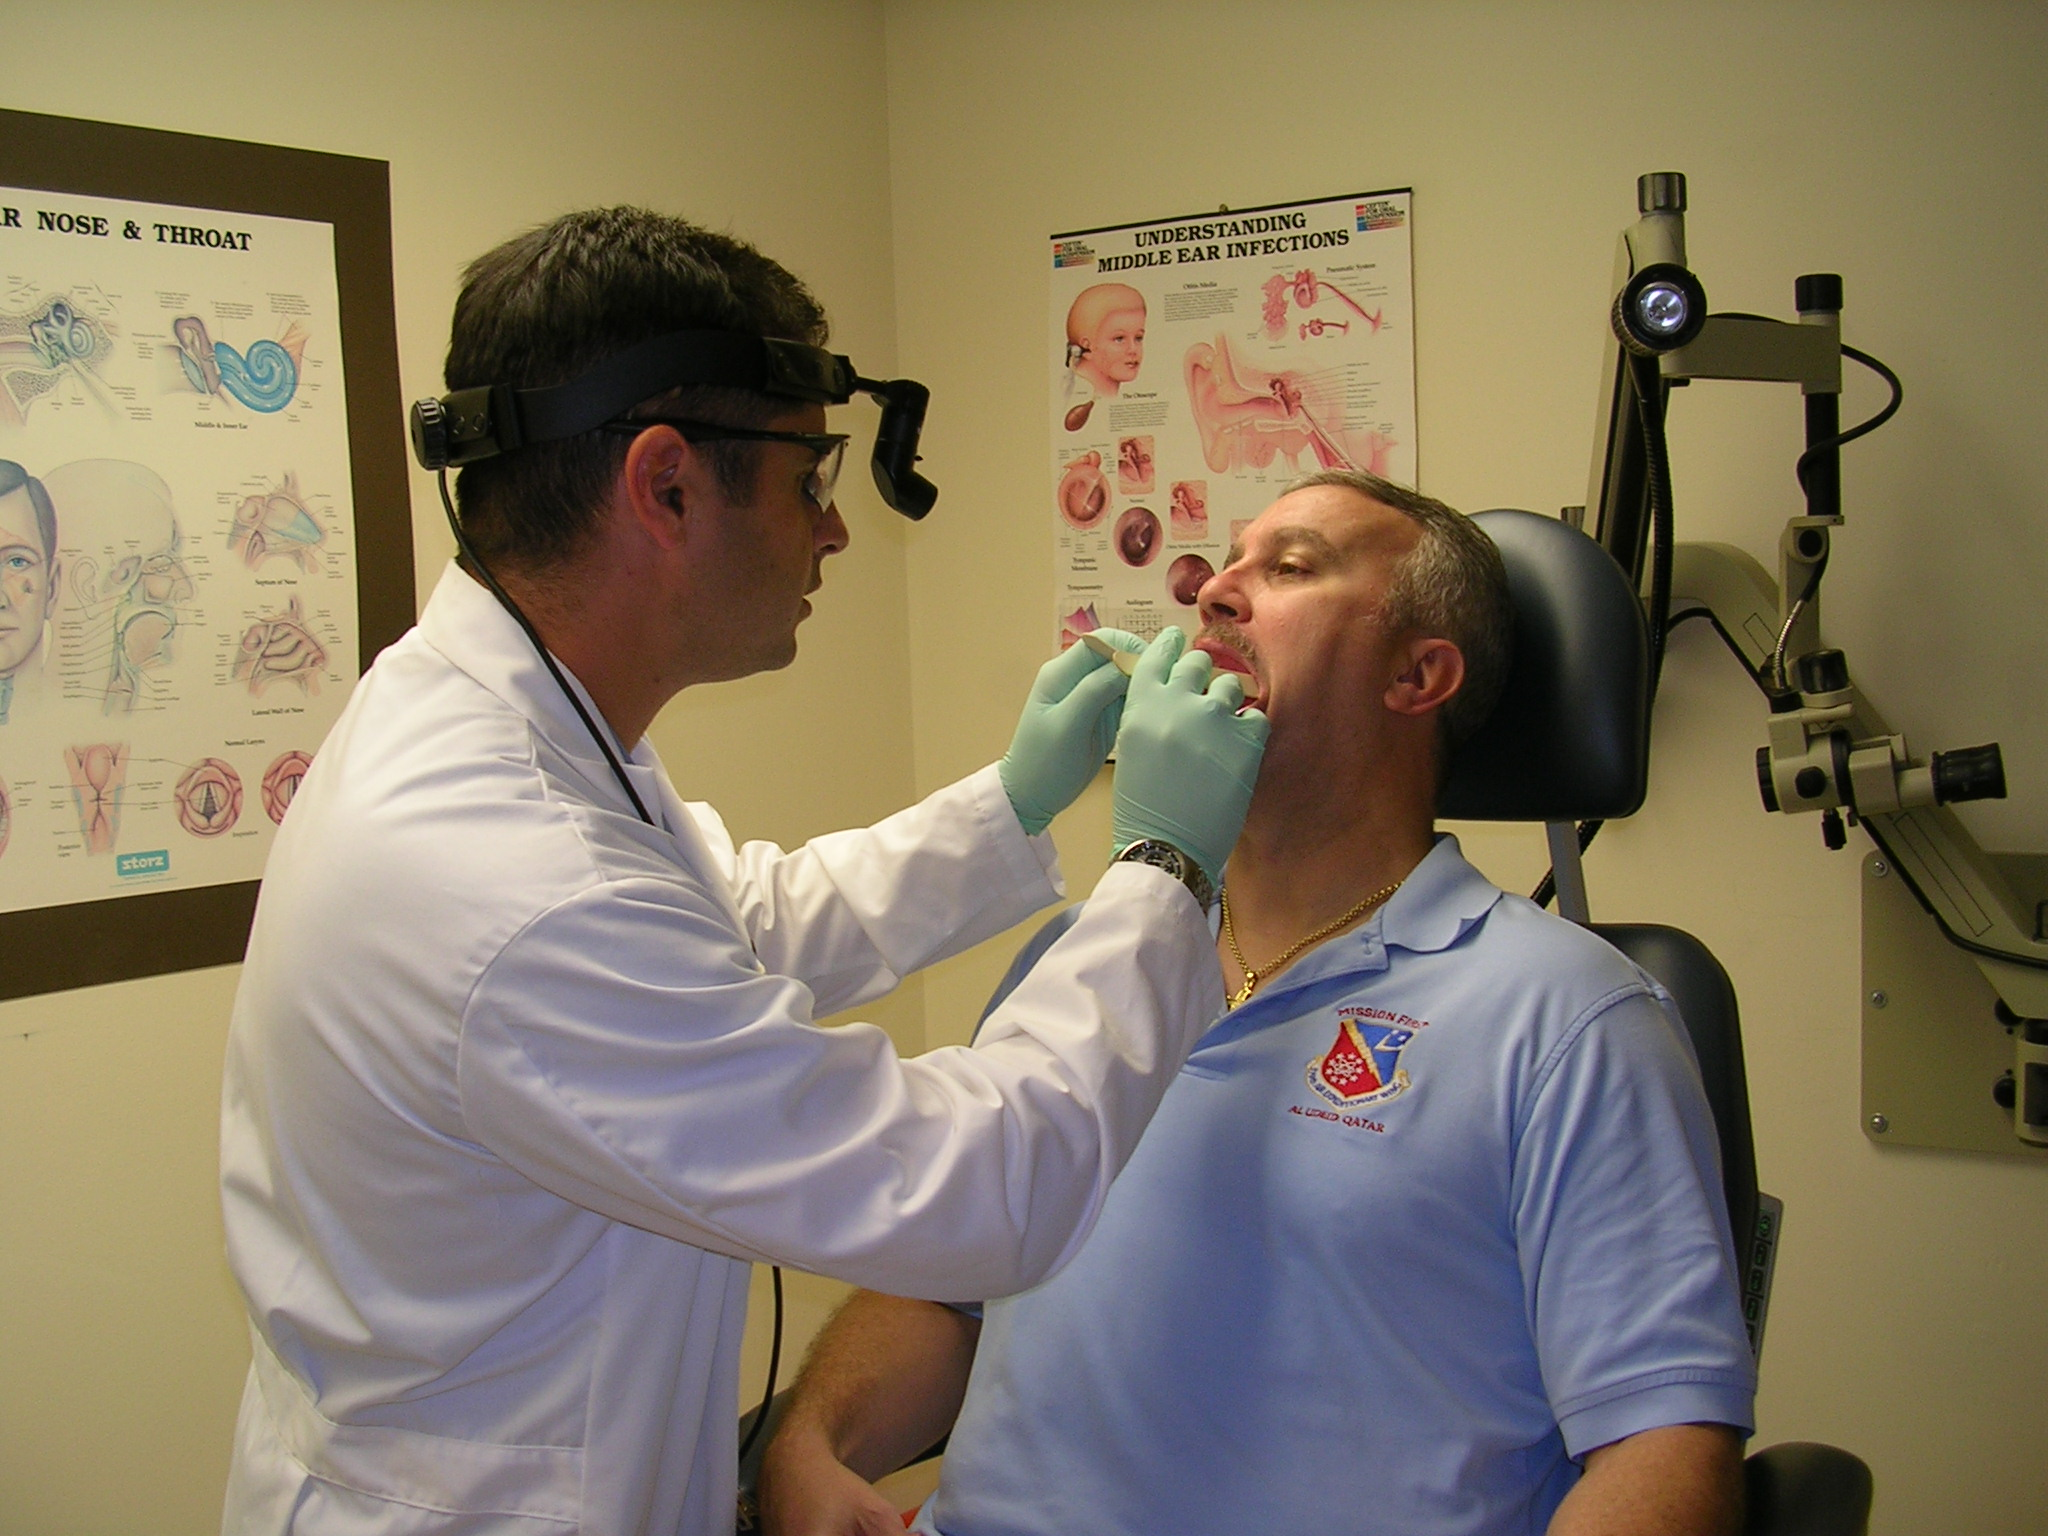 Doctor checking a man's mouth in an exam room.